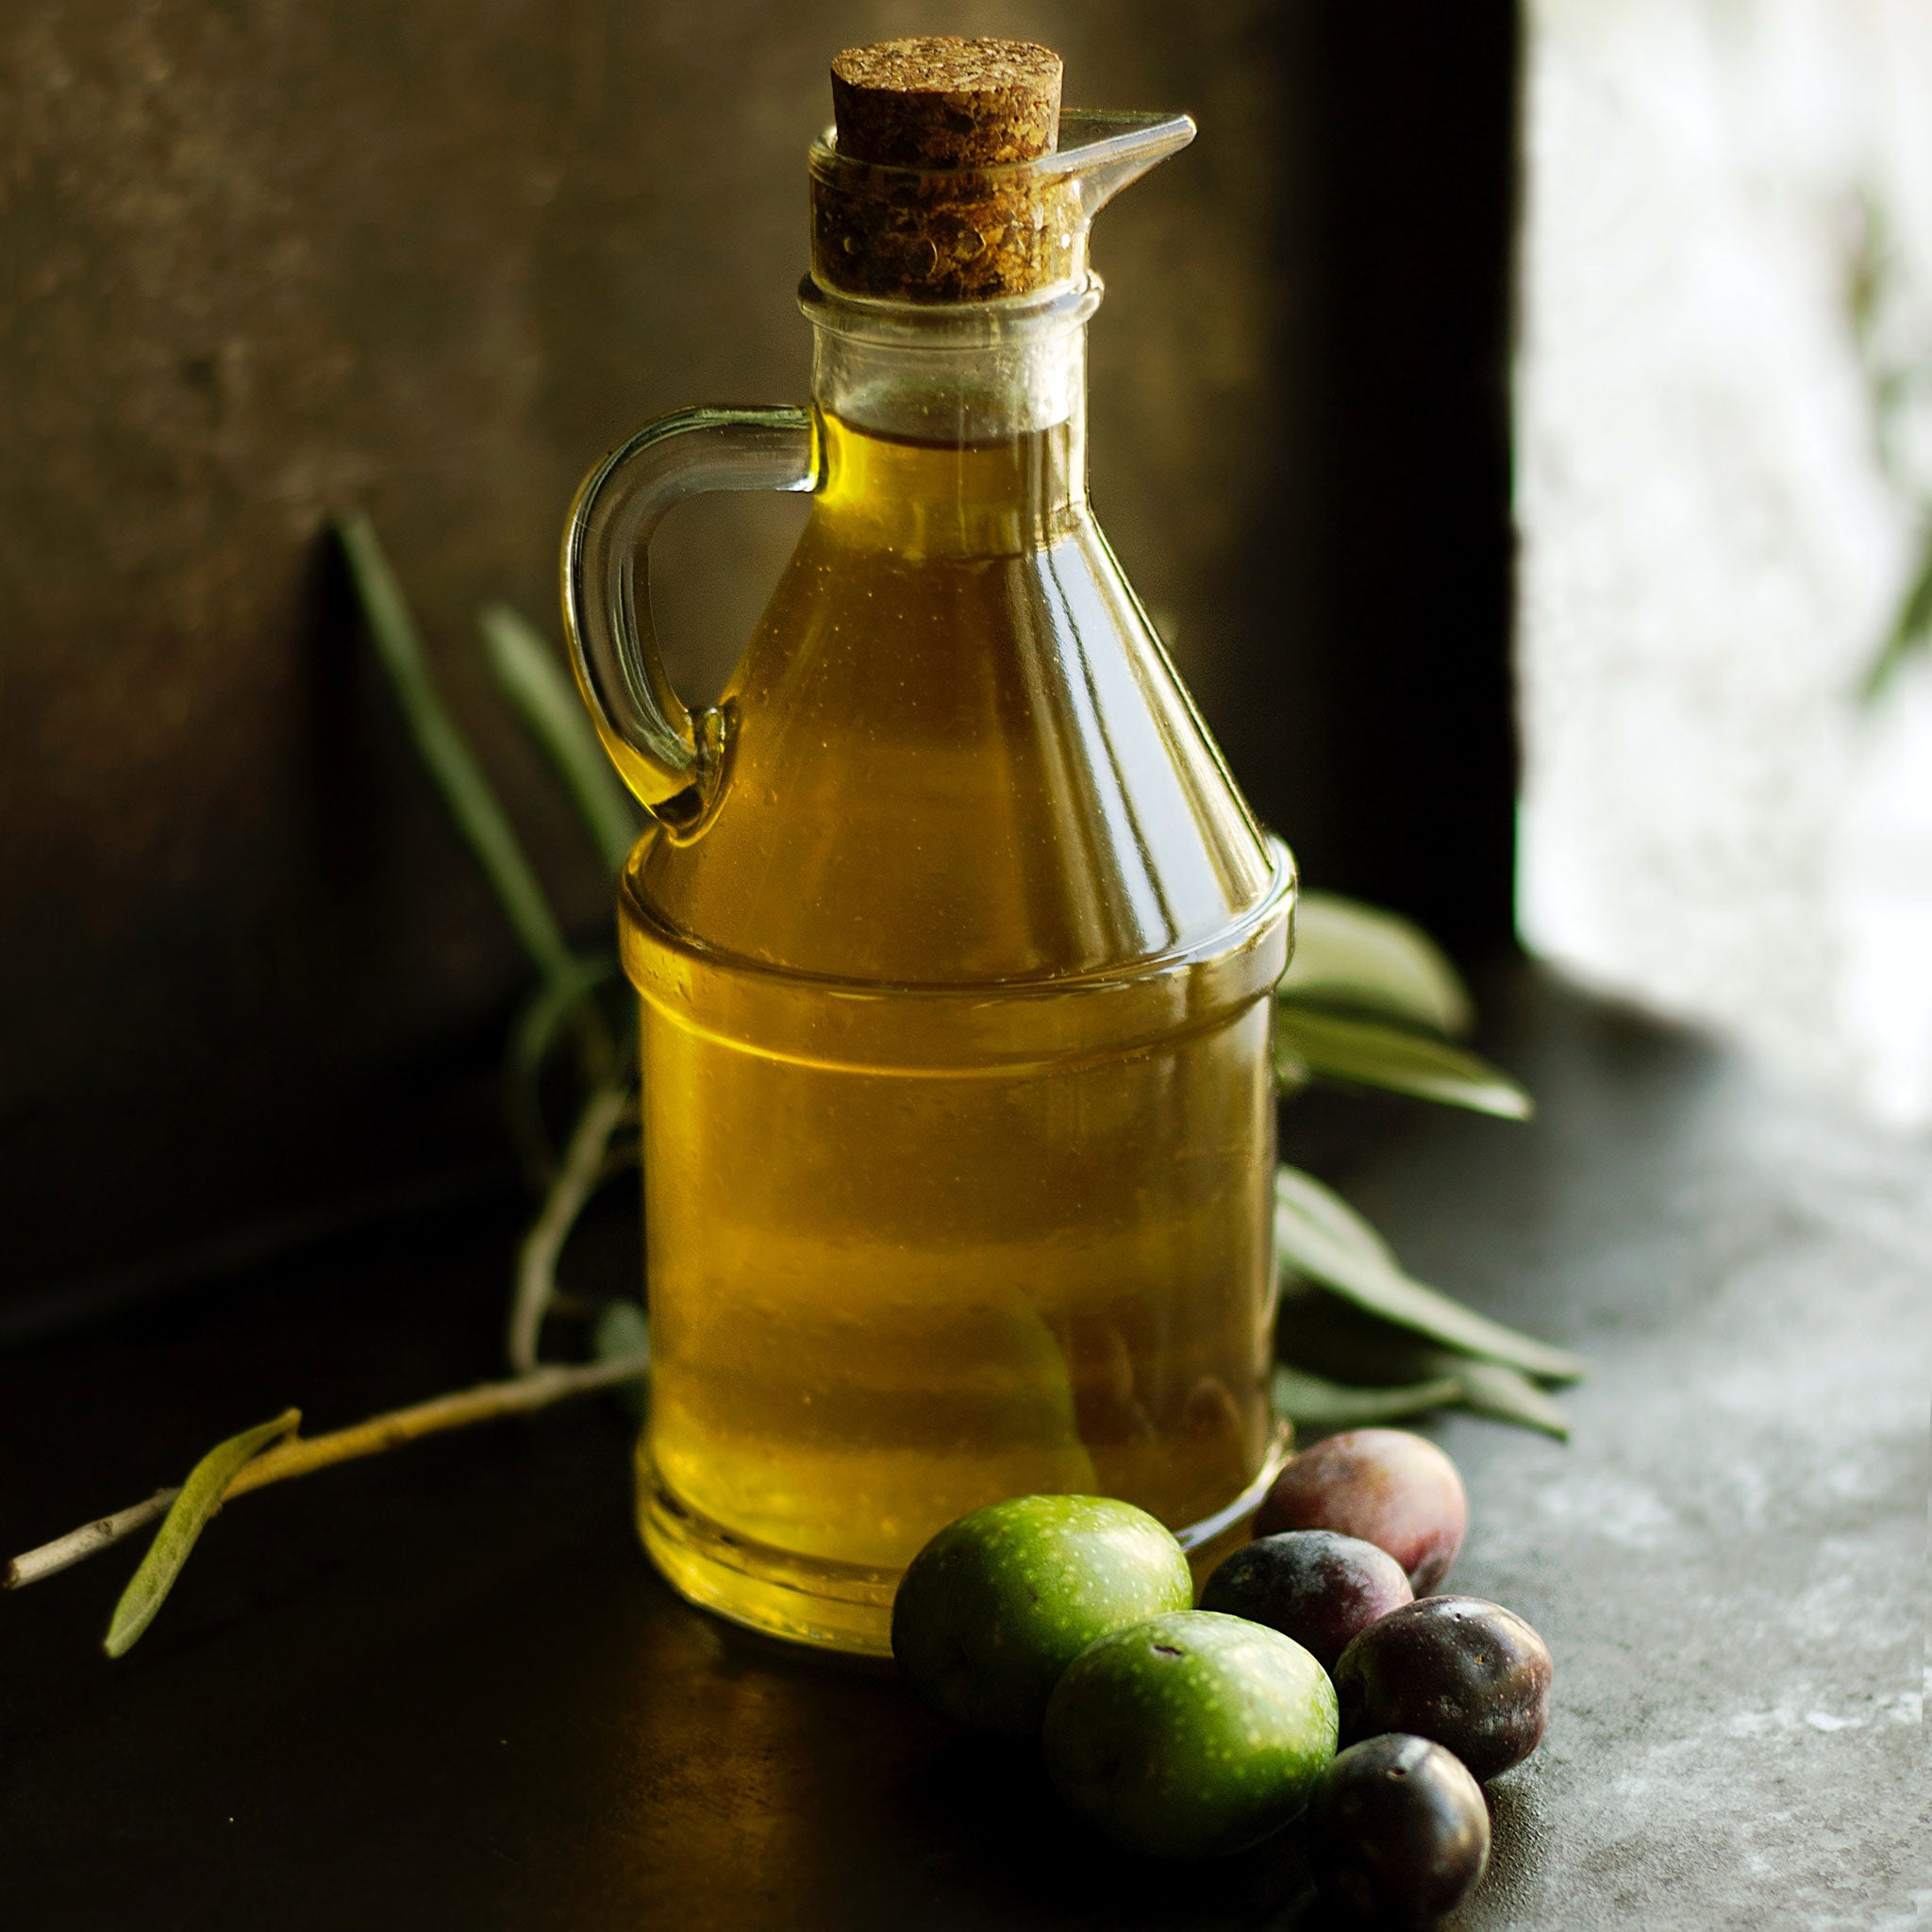 Arbequina Extra Virgin Olive Oil from California